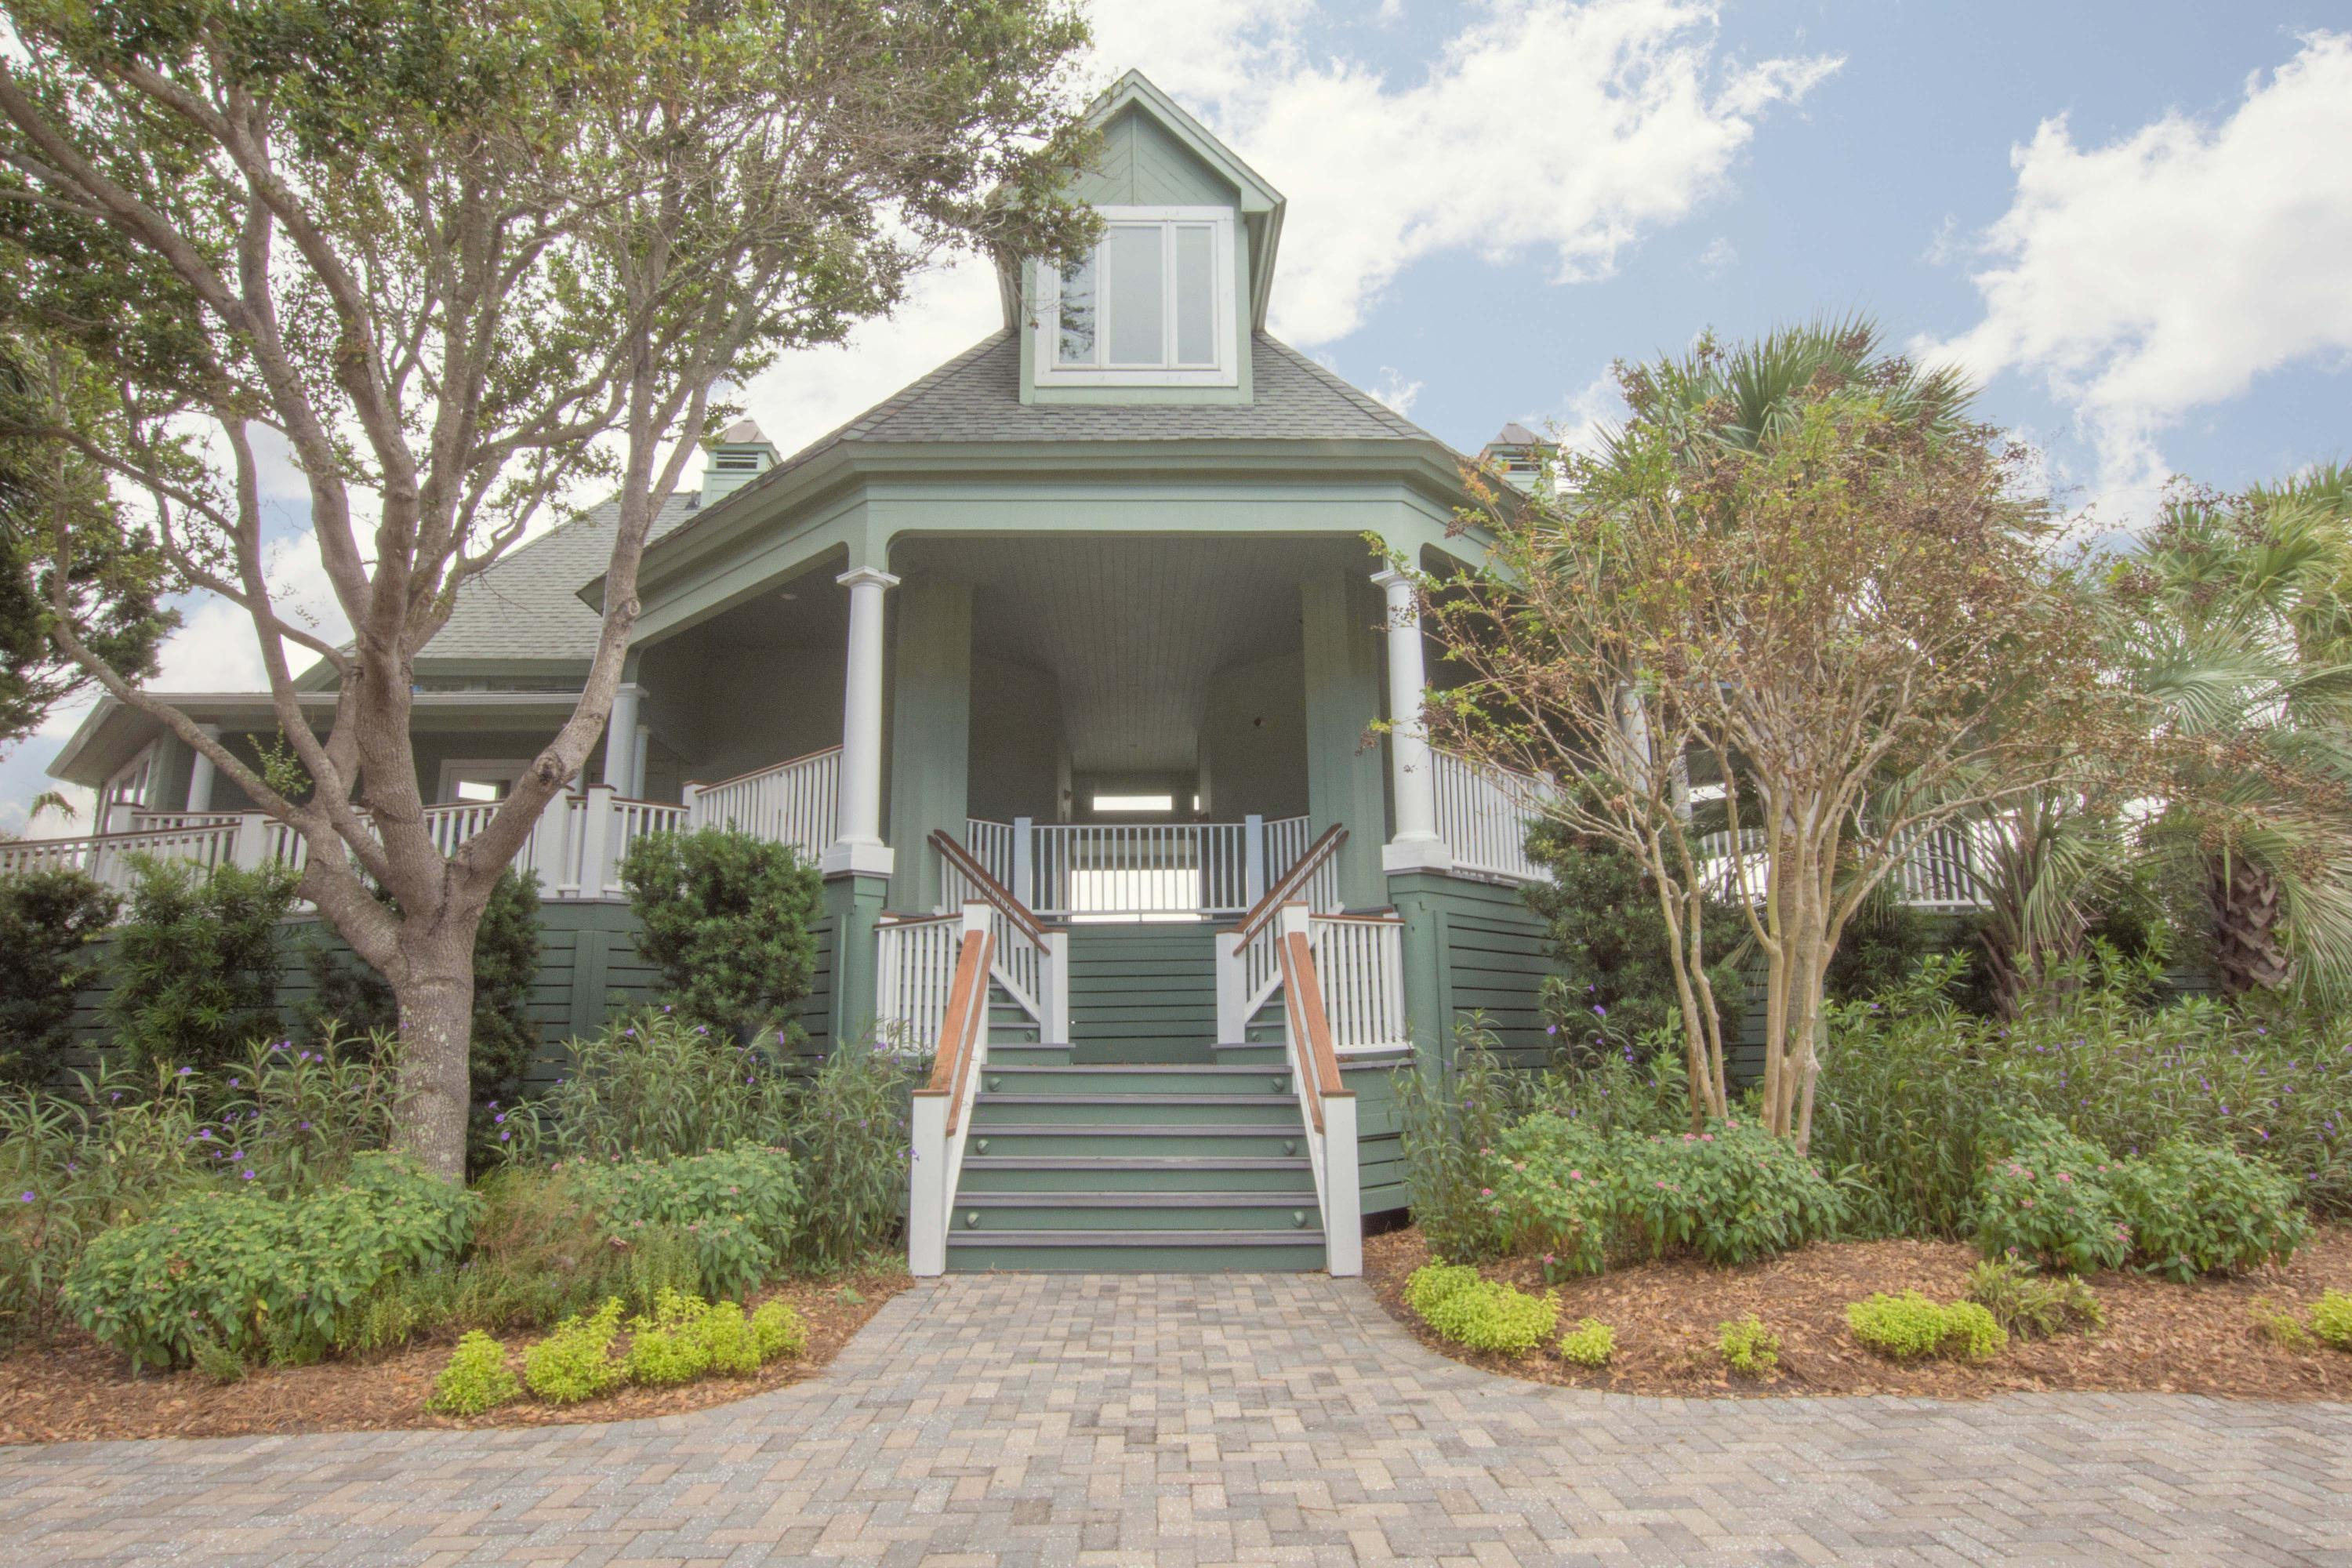 Wild Dunes Homes For Sale - 105 Village At Wild Dunes, Isle of Palms, SC - 14